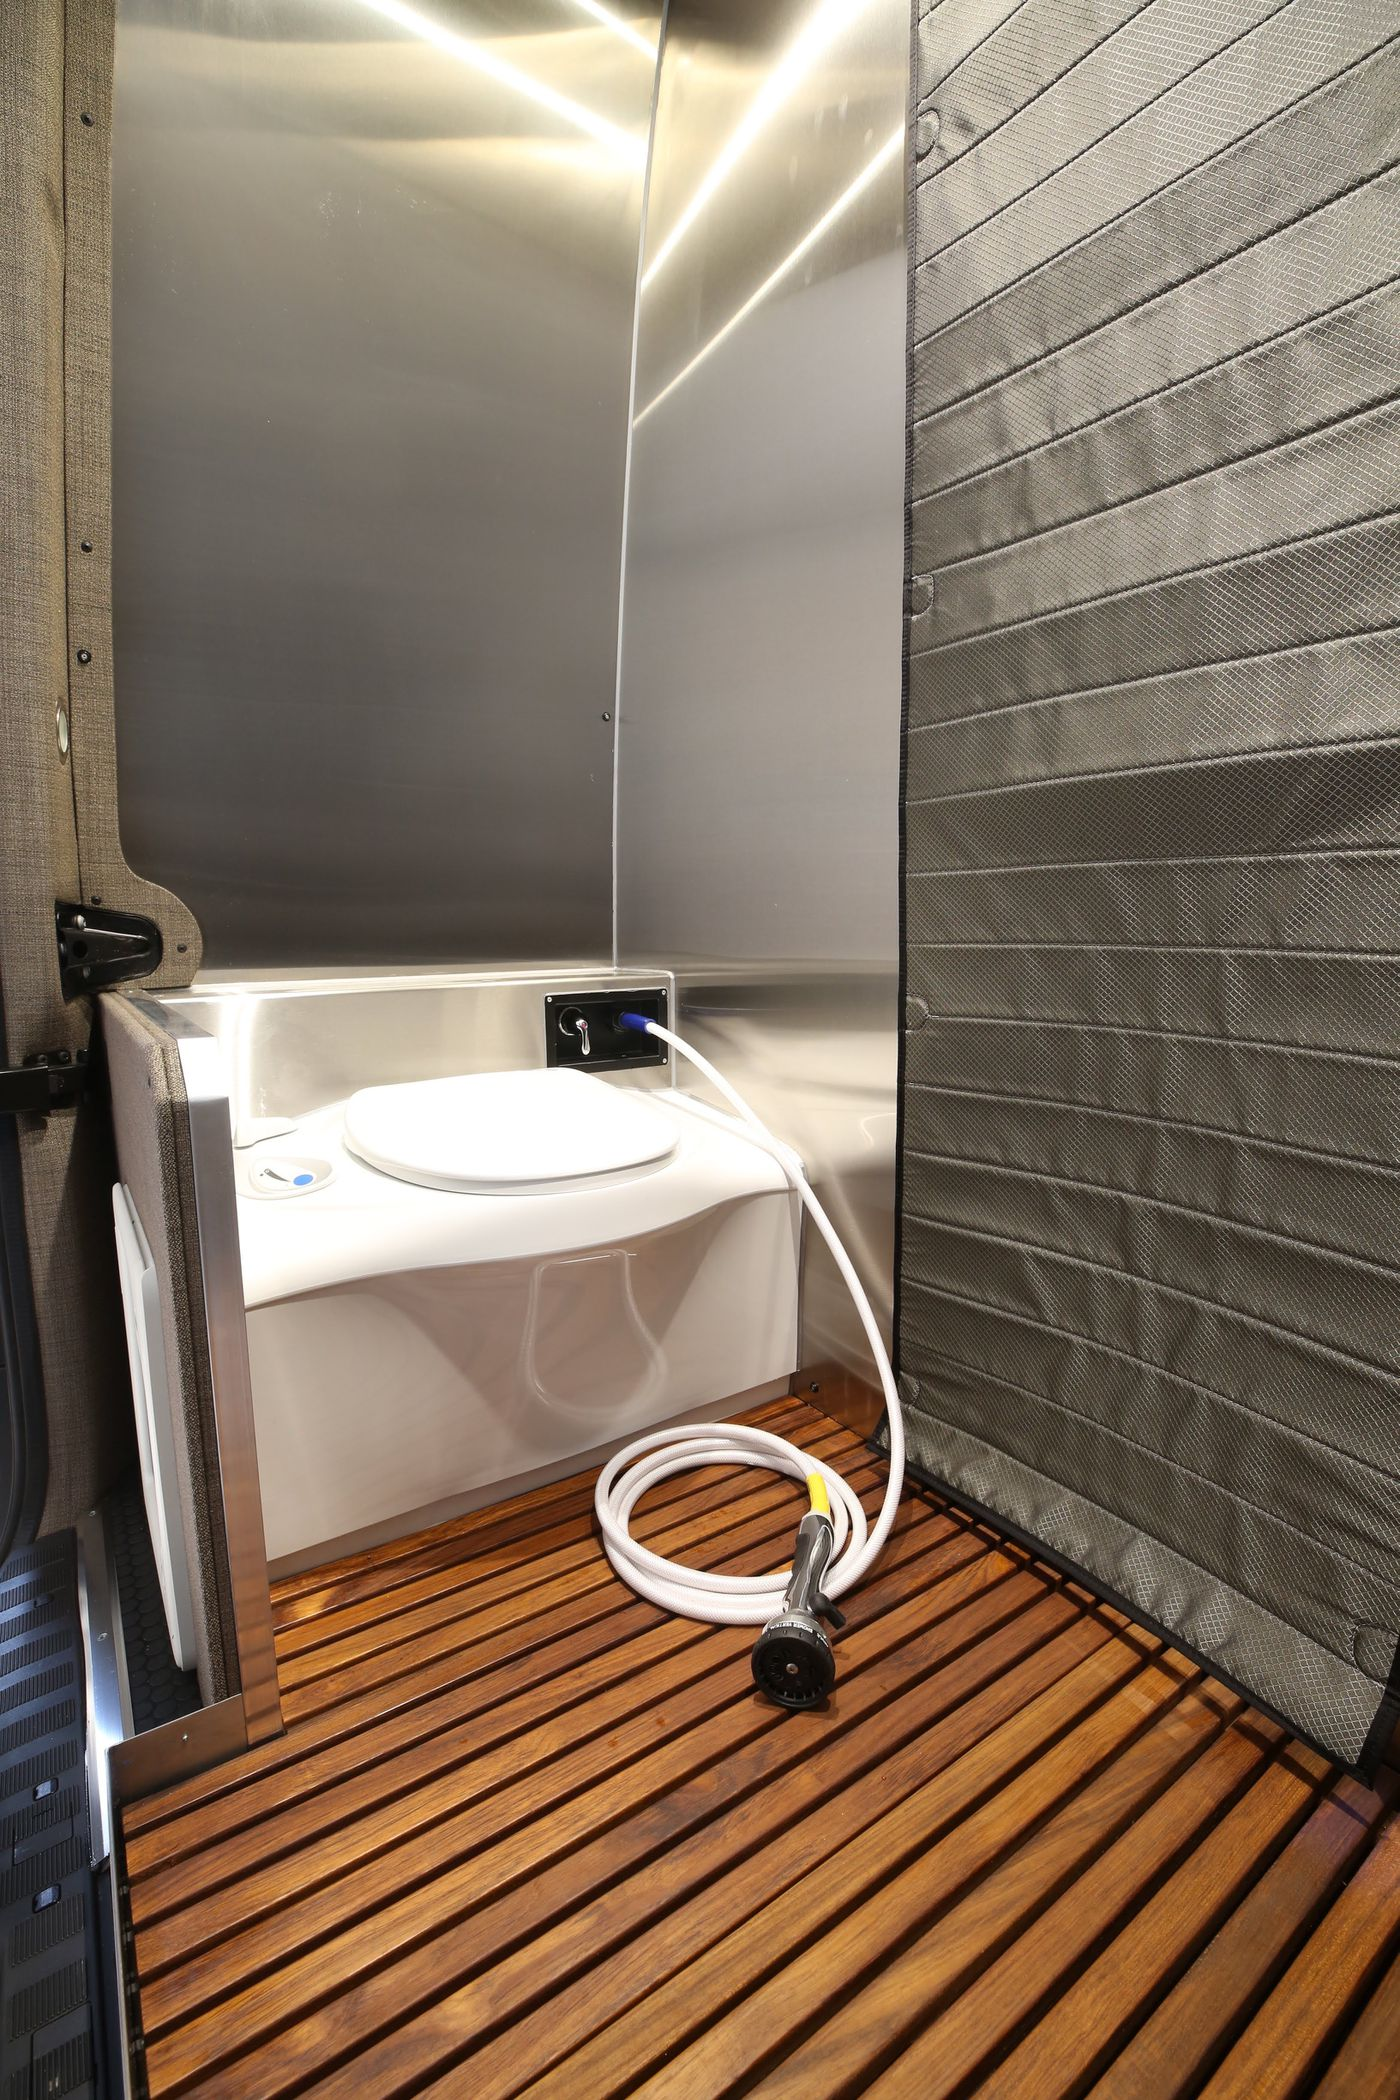 Camper Van Sleeps Four And Hides A Clever Bathroom Curbed